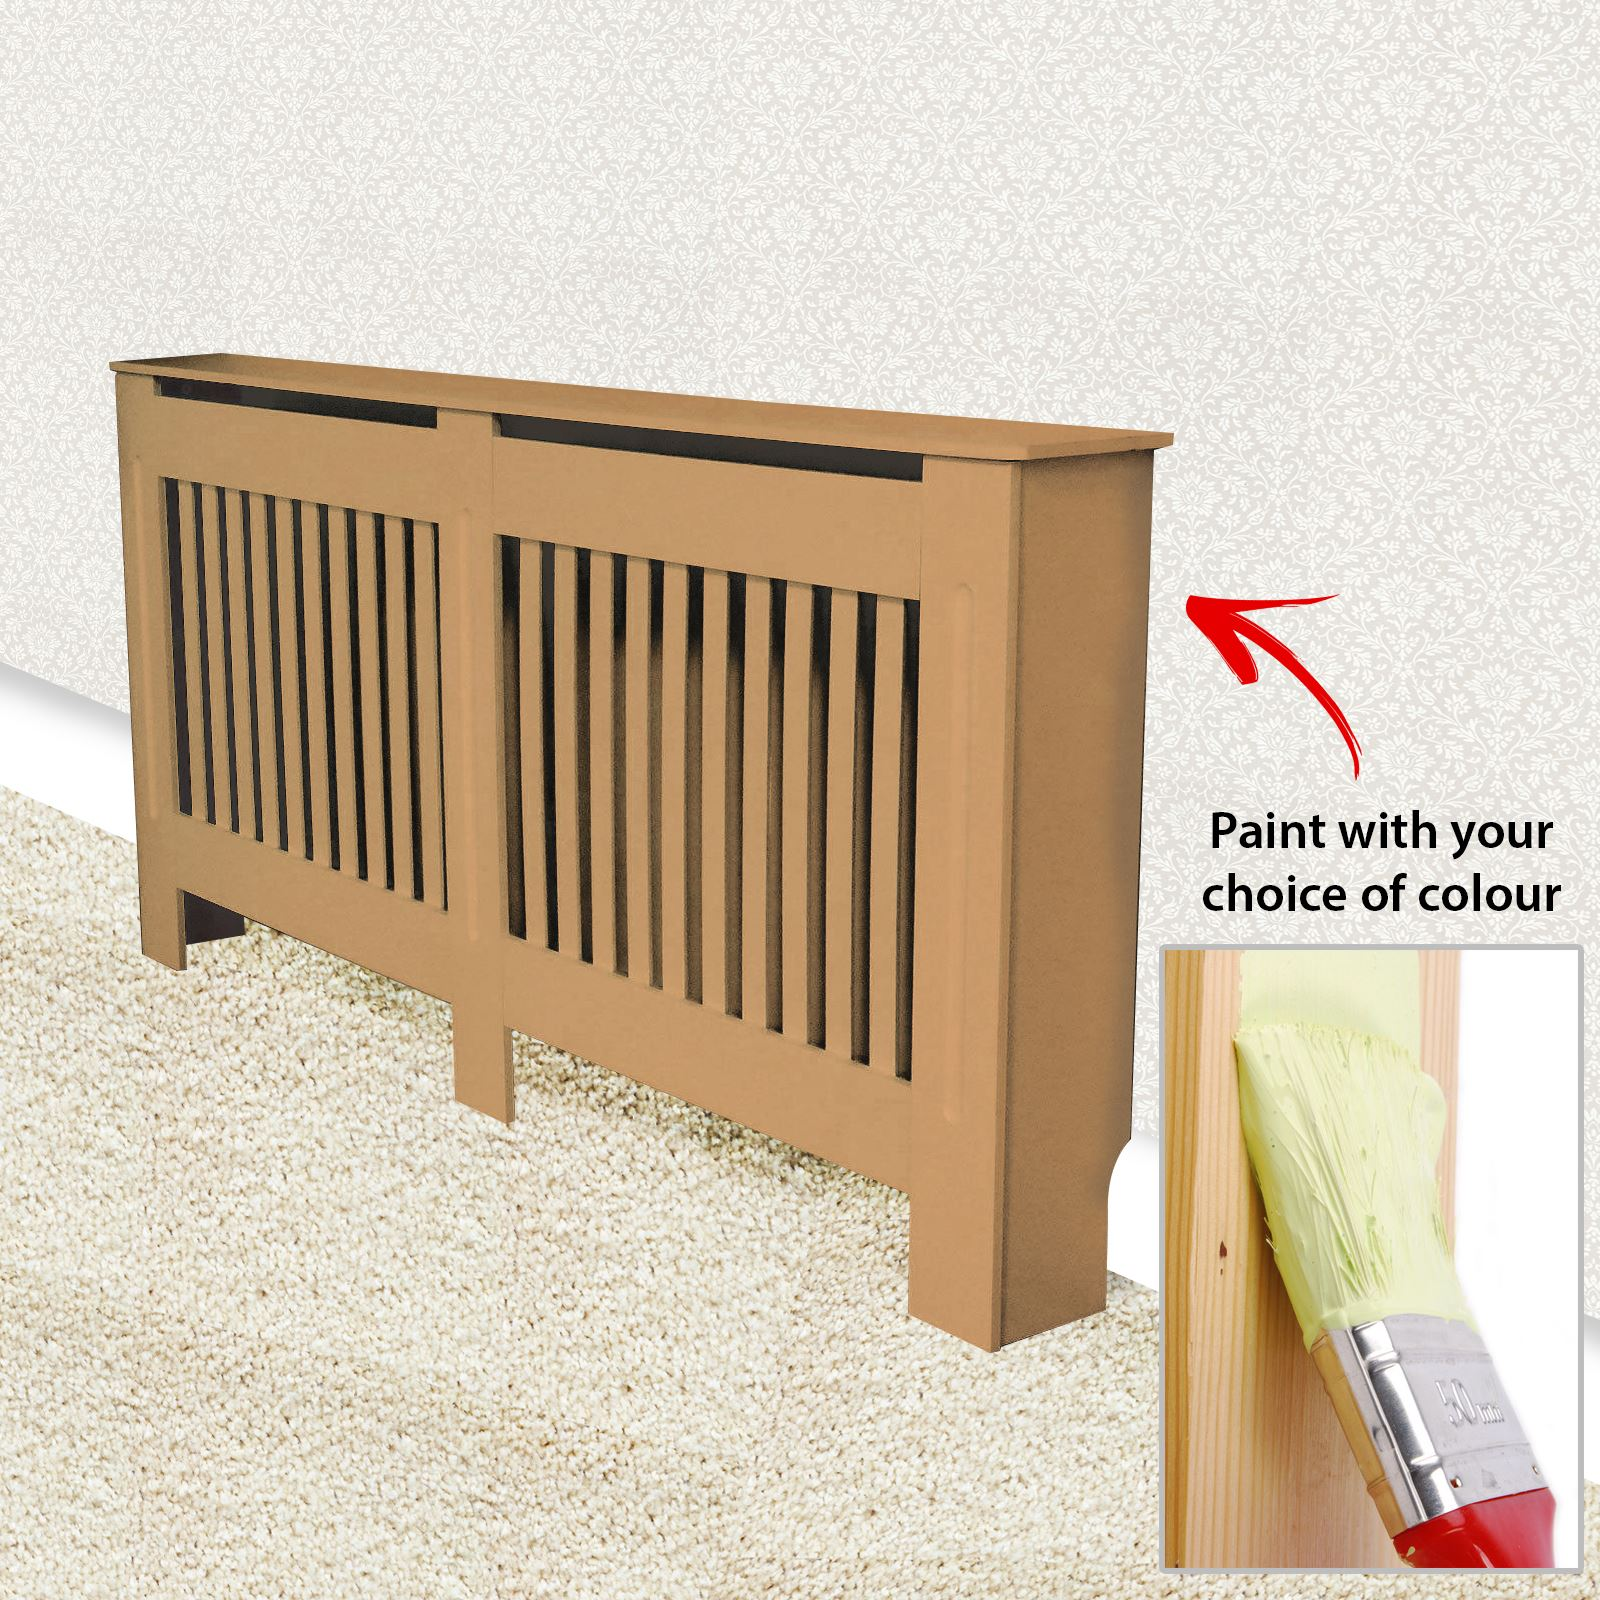 Traditional-Radiator-Cover-Cabinet-Vertical-Slatted-MDF-Wood-Small-Large-Unit thumbnail 11